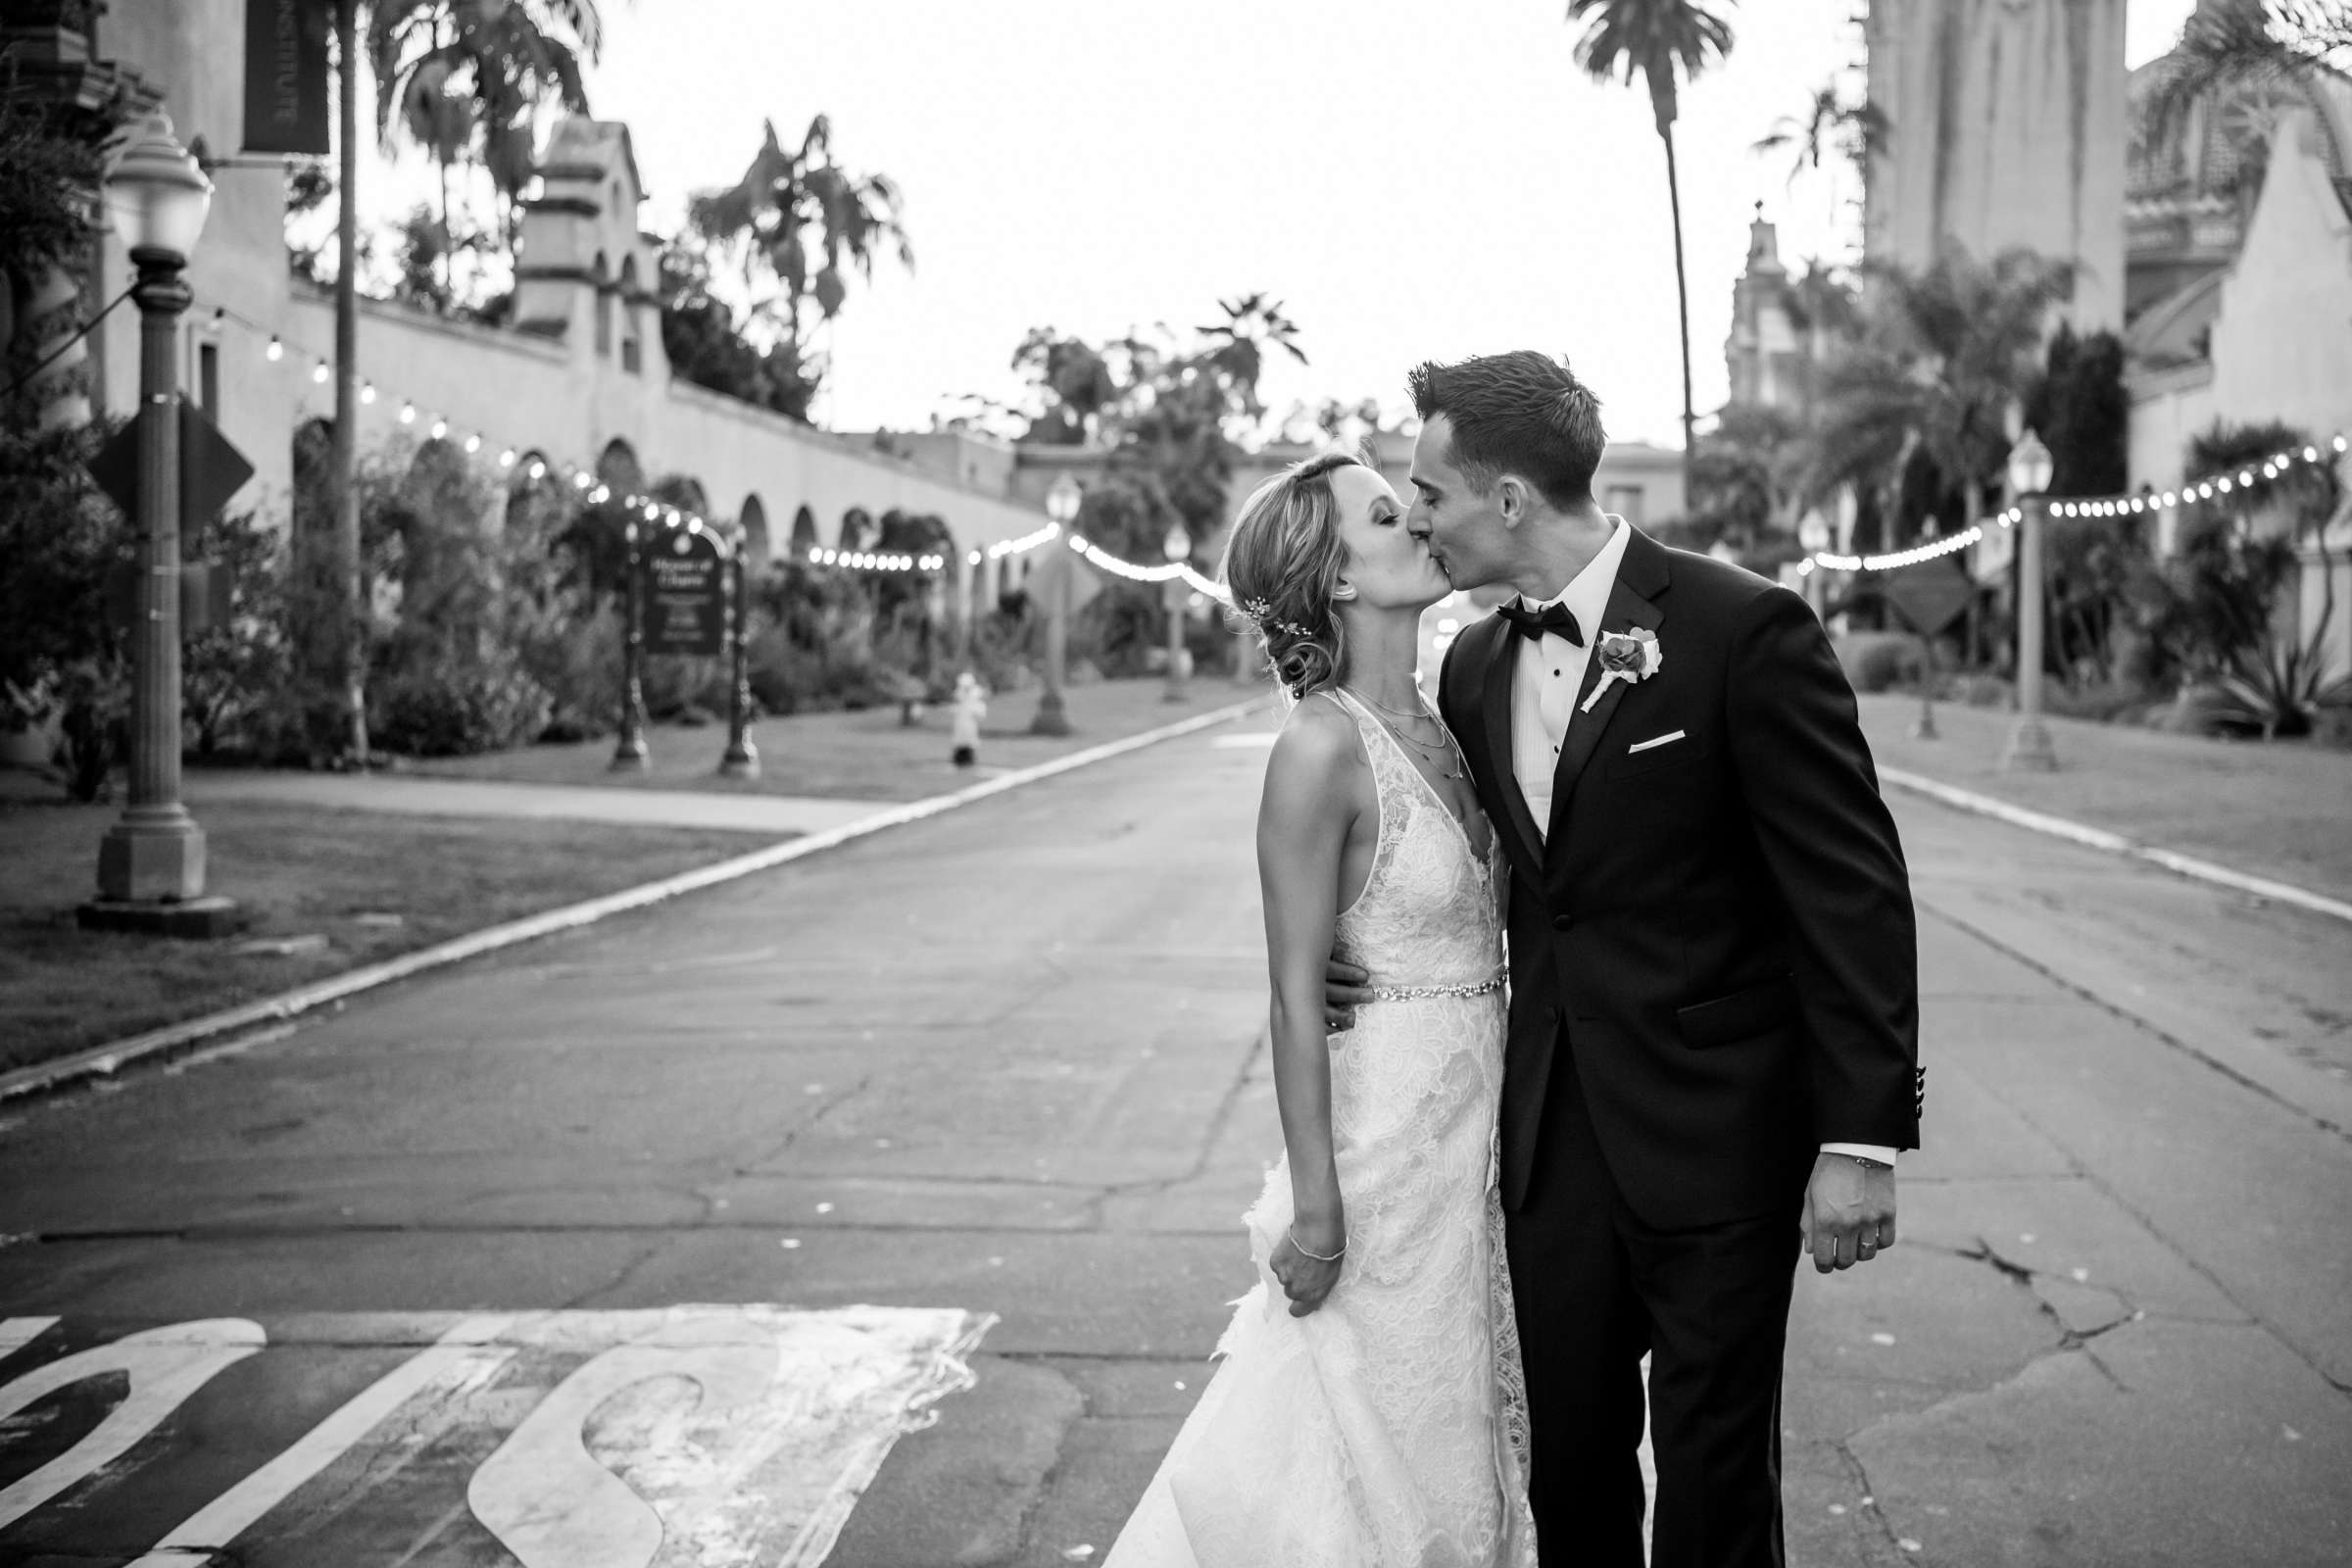 The Prado Wedding coordinated by Bliss Events, Sara and Marvin Wedding Photo #559640 by True Photography